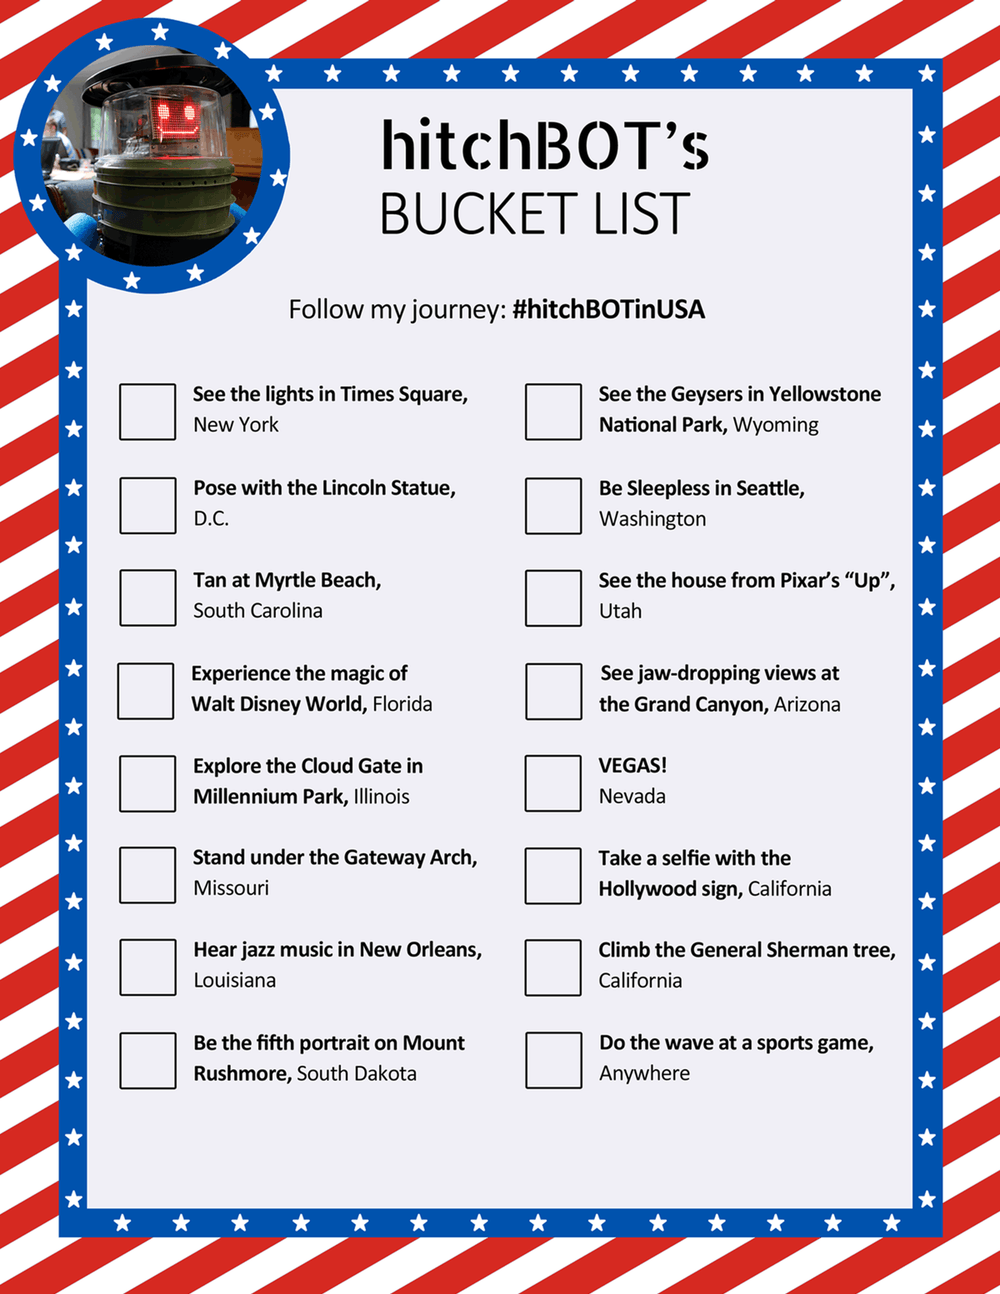 hitchBOT's Bucket List